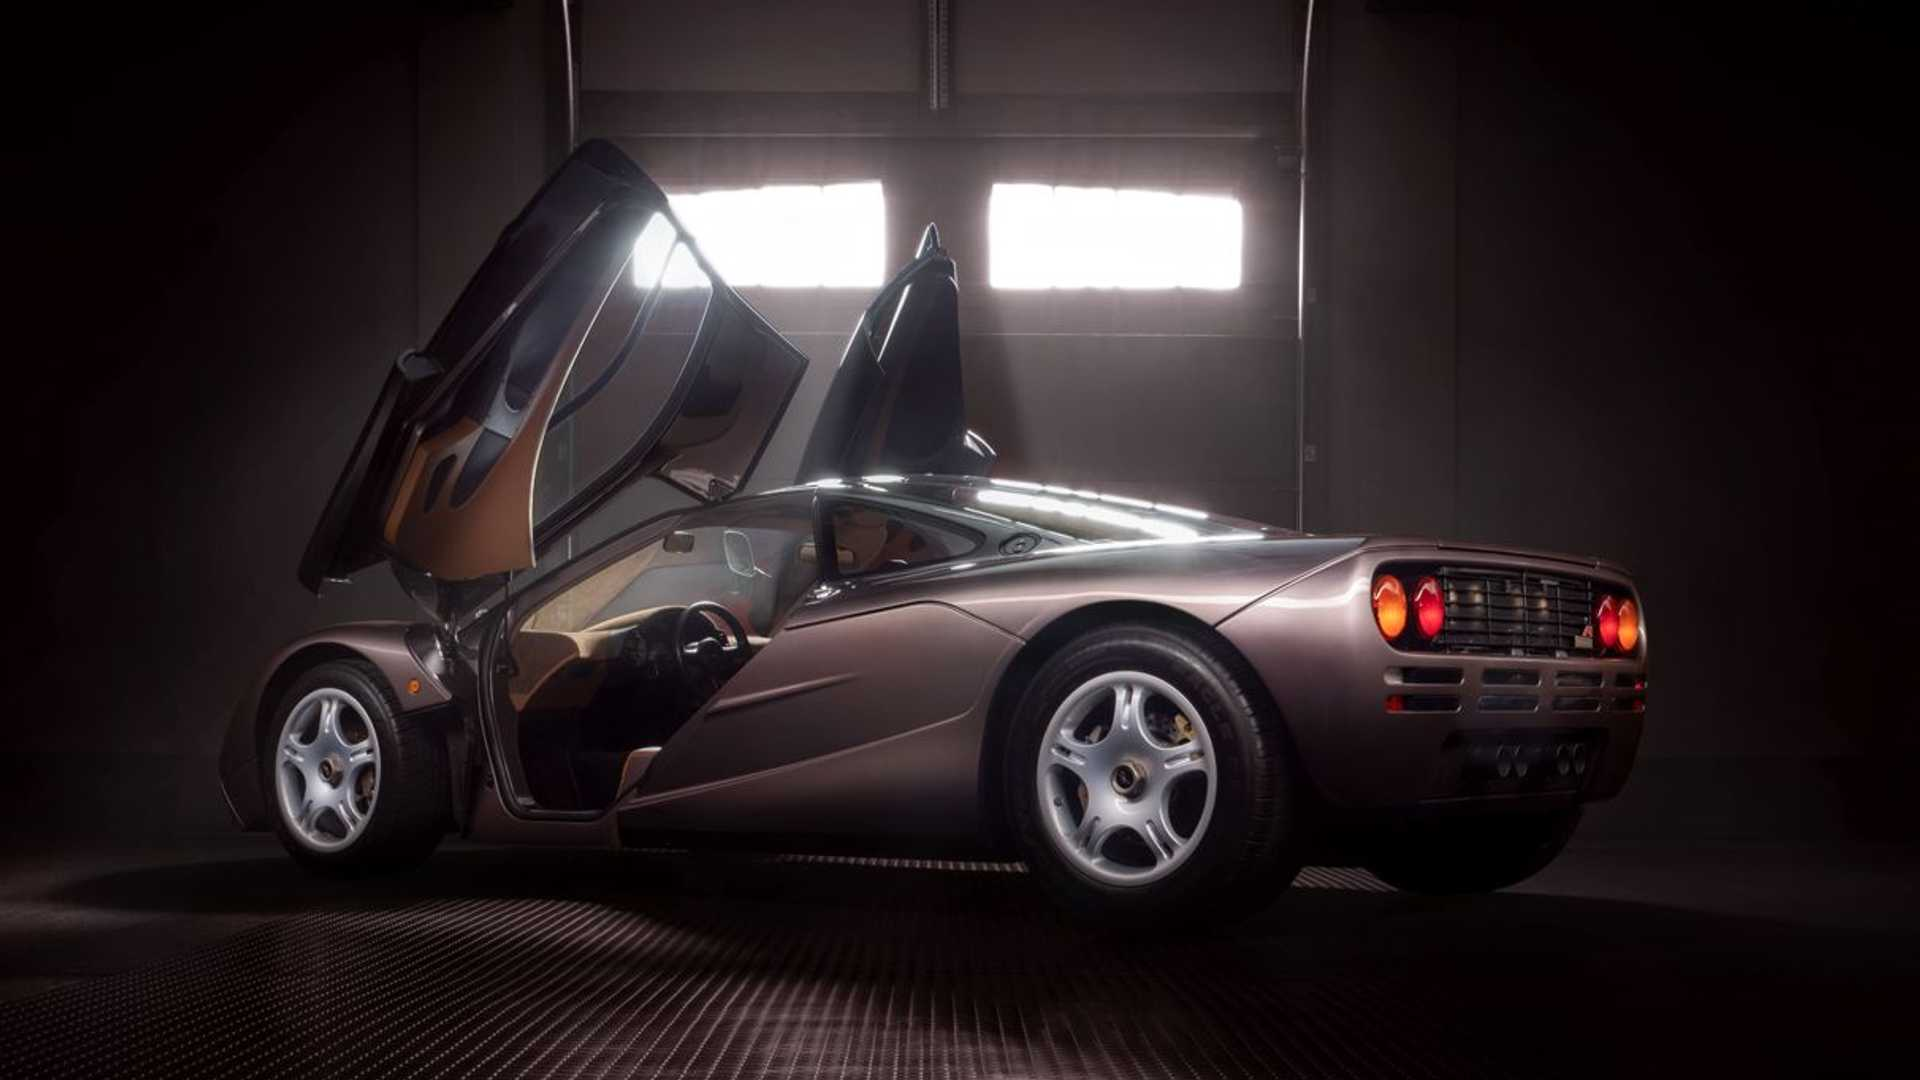 1995 McLaren F1 Gooding And Company Auction 2020 Rear Doors Open